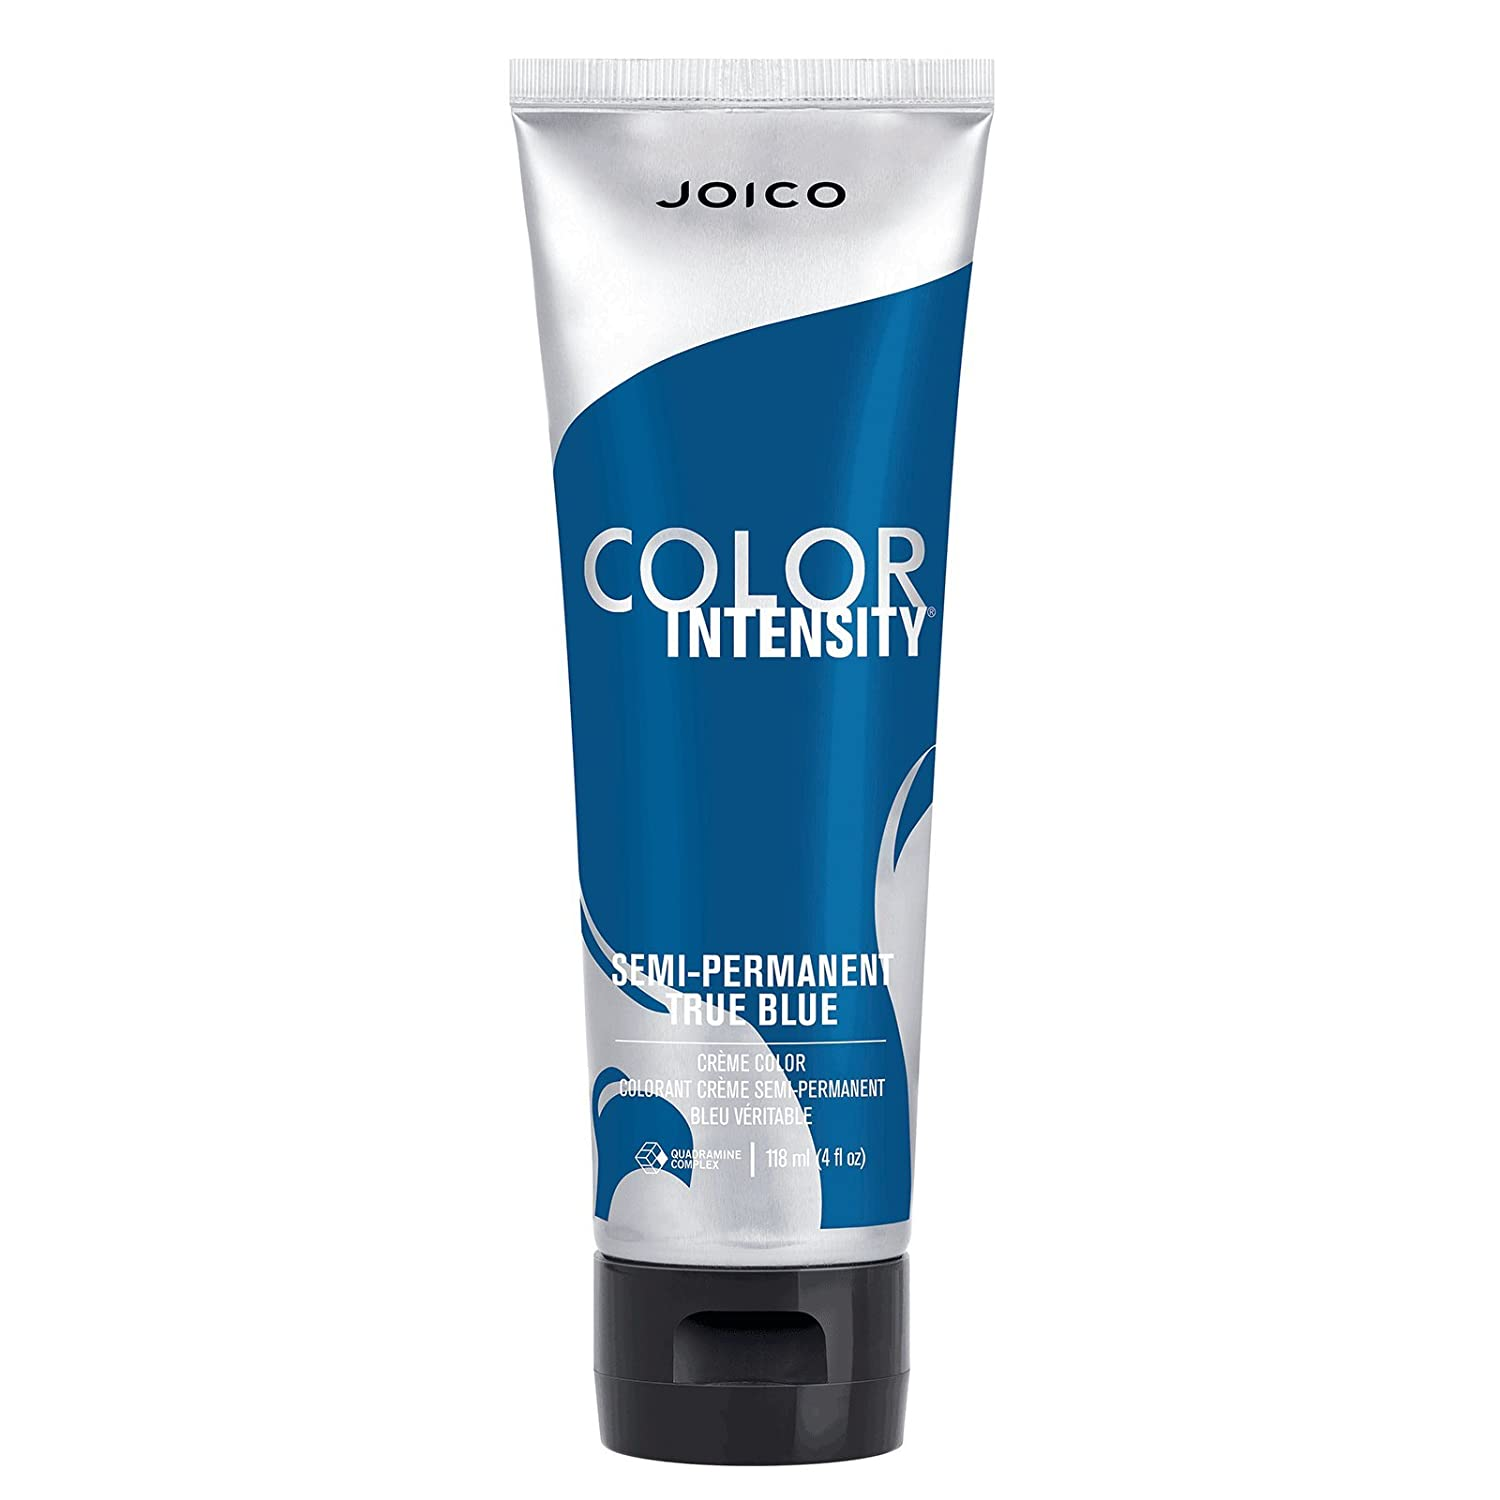 Joico Color Intensity True Blue Semi-Permanent Hair Colour